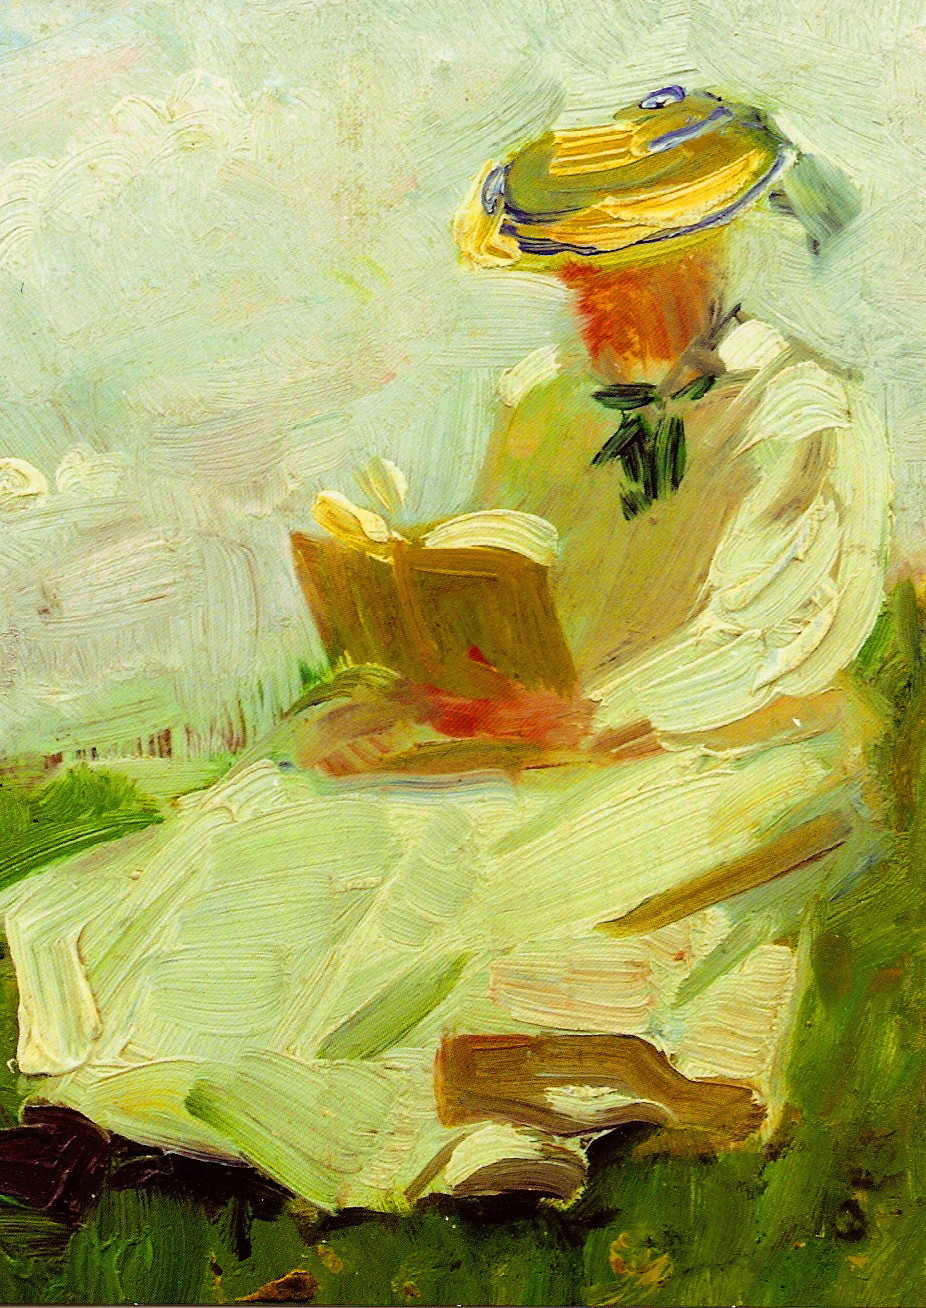 Woman Reading in the Grass (1906). Franz Marc (German, 1880-1916). Marc's early works were painted in a naturalistic academic style, but after discovering French Impressionist painting in 1903 he adopted a more modern approach, using simplified lines...